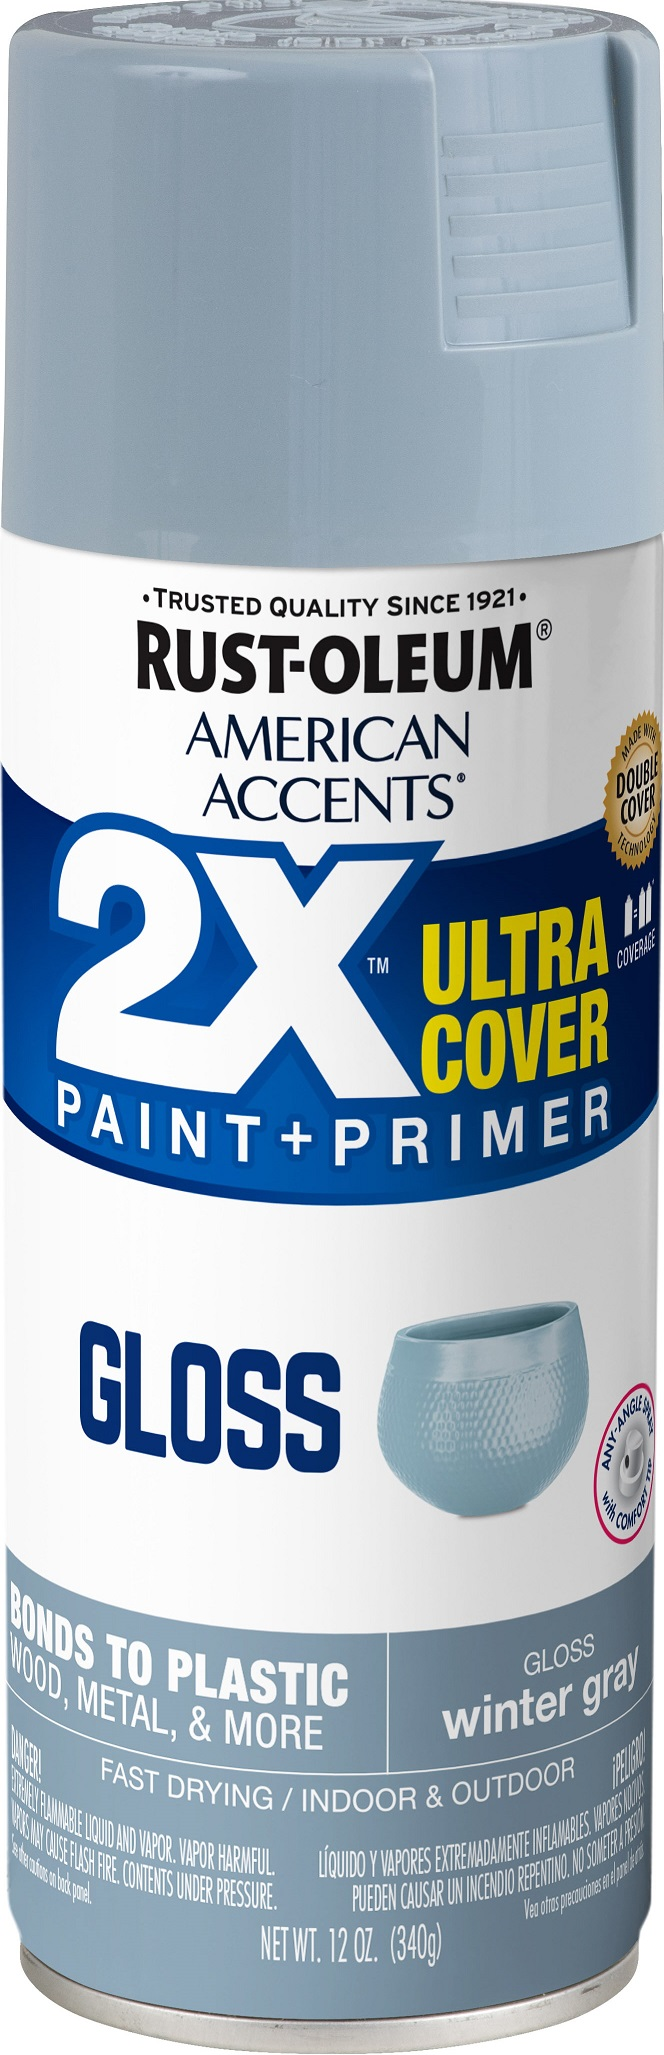 (3 Pack) Rust-Oleum American Accents Ultra Cover 2X Gloss Winter Gray Spray Paint and Primer in 1, 12 oz